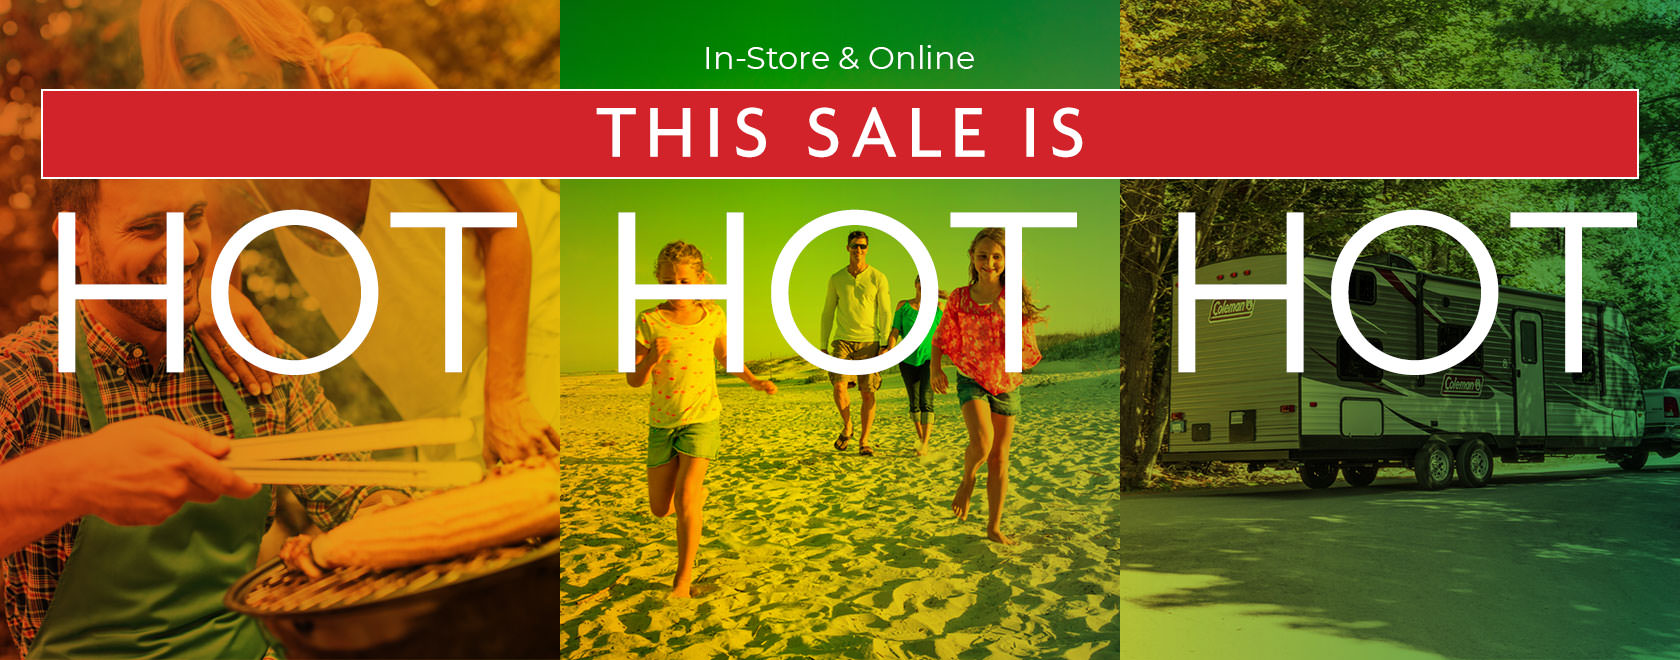 Up to 50% Off RV & Outdoor Gear -- Shop Now